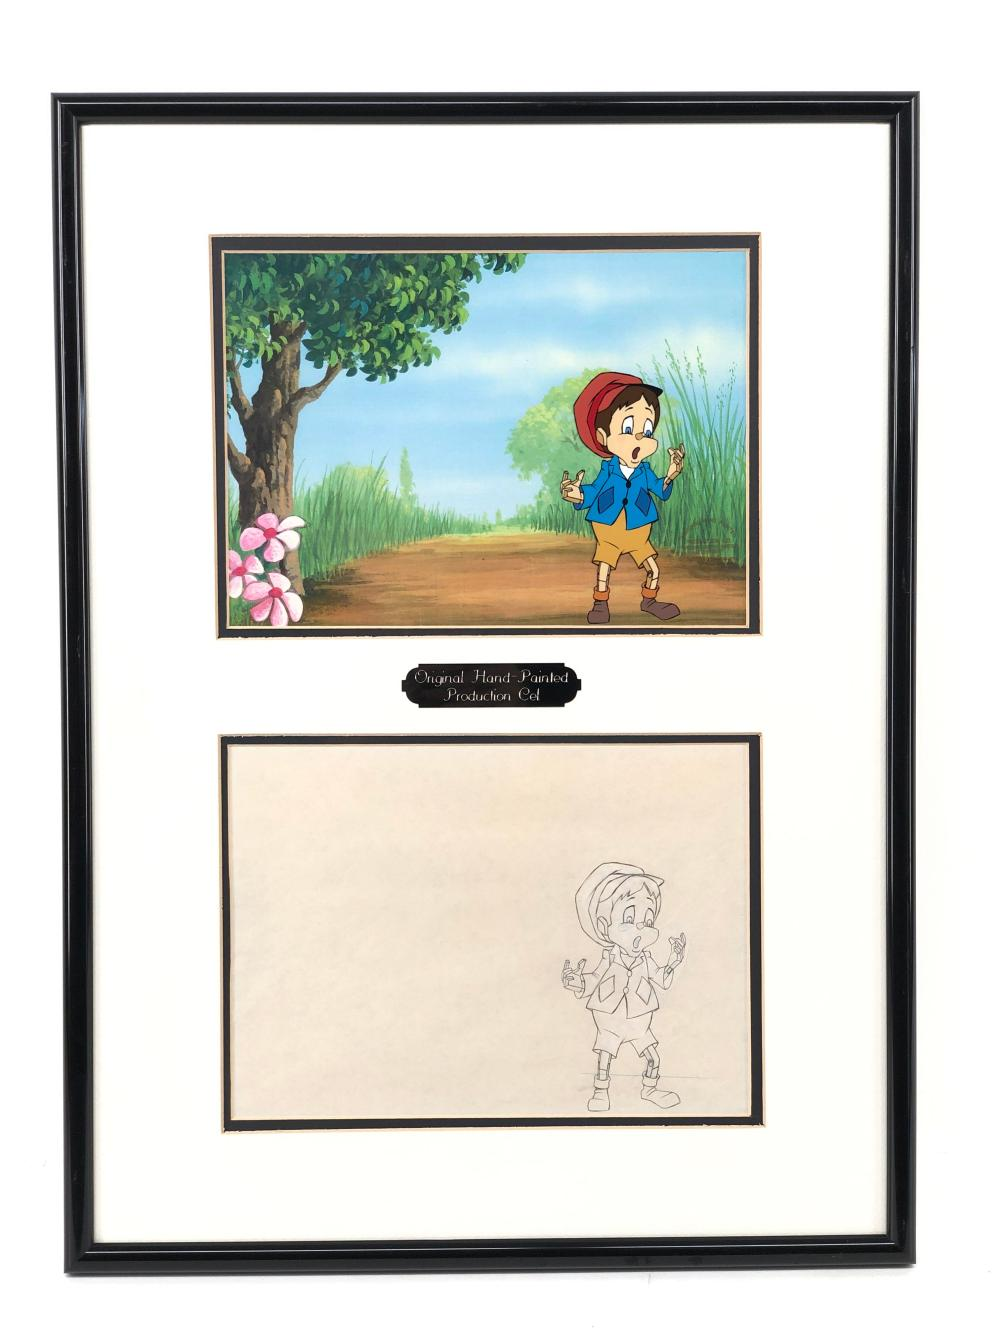 1987 PINOCCHIO AND THE EMPEROR OF THE NIGHT HAND PAINTED CEL